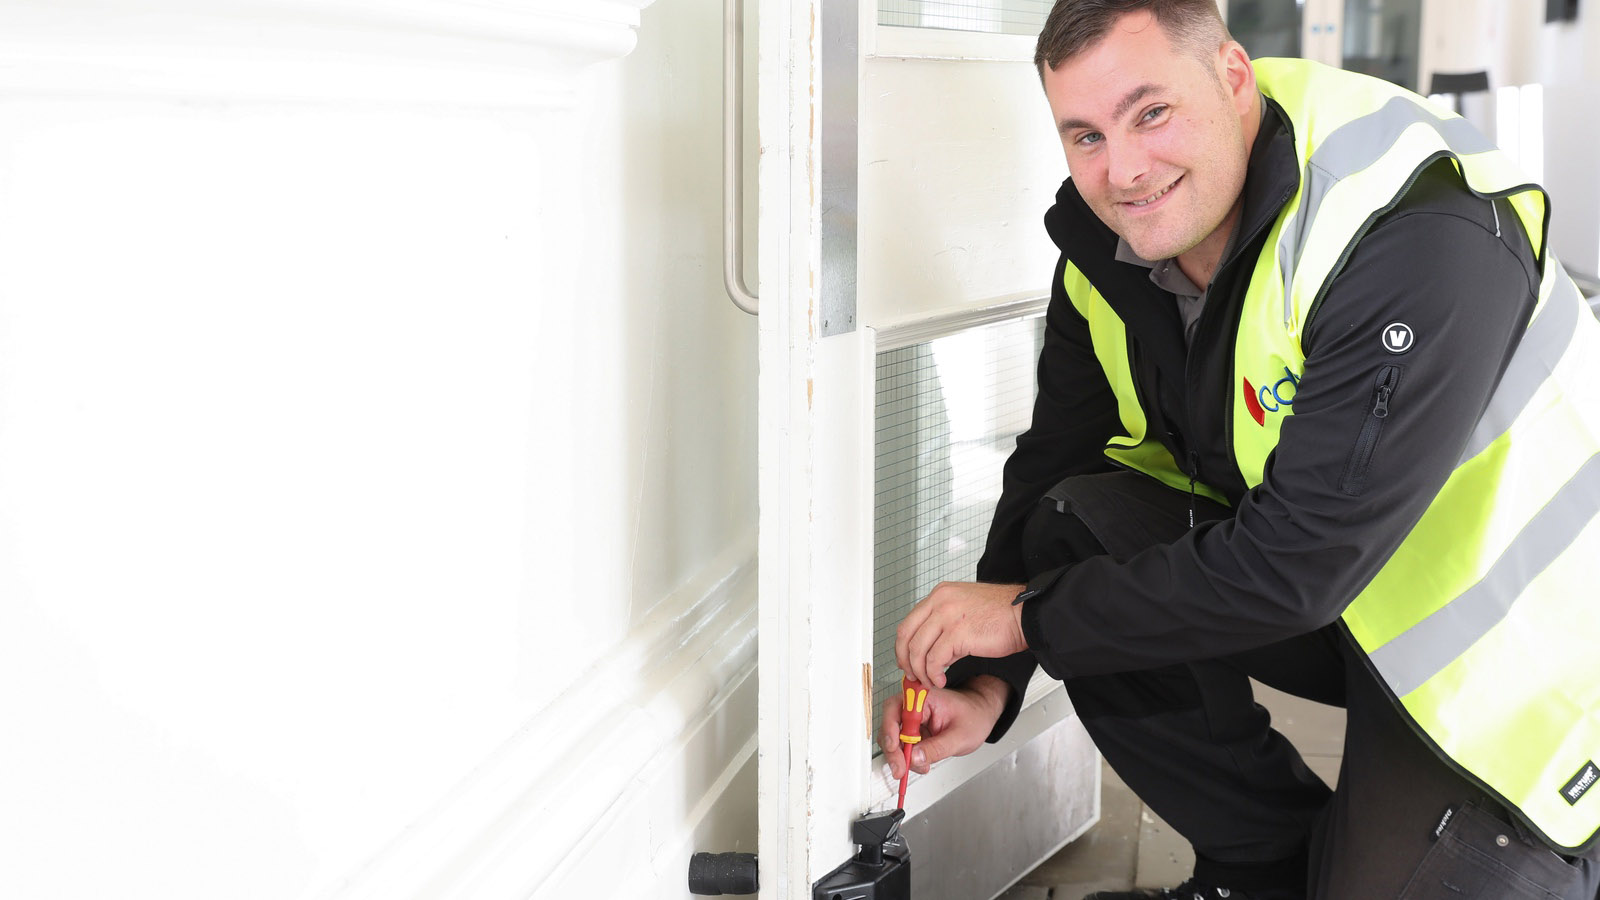 Specialist door openers ensure fire safety in a COVID-19-secure workplace, says CDS